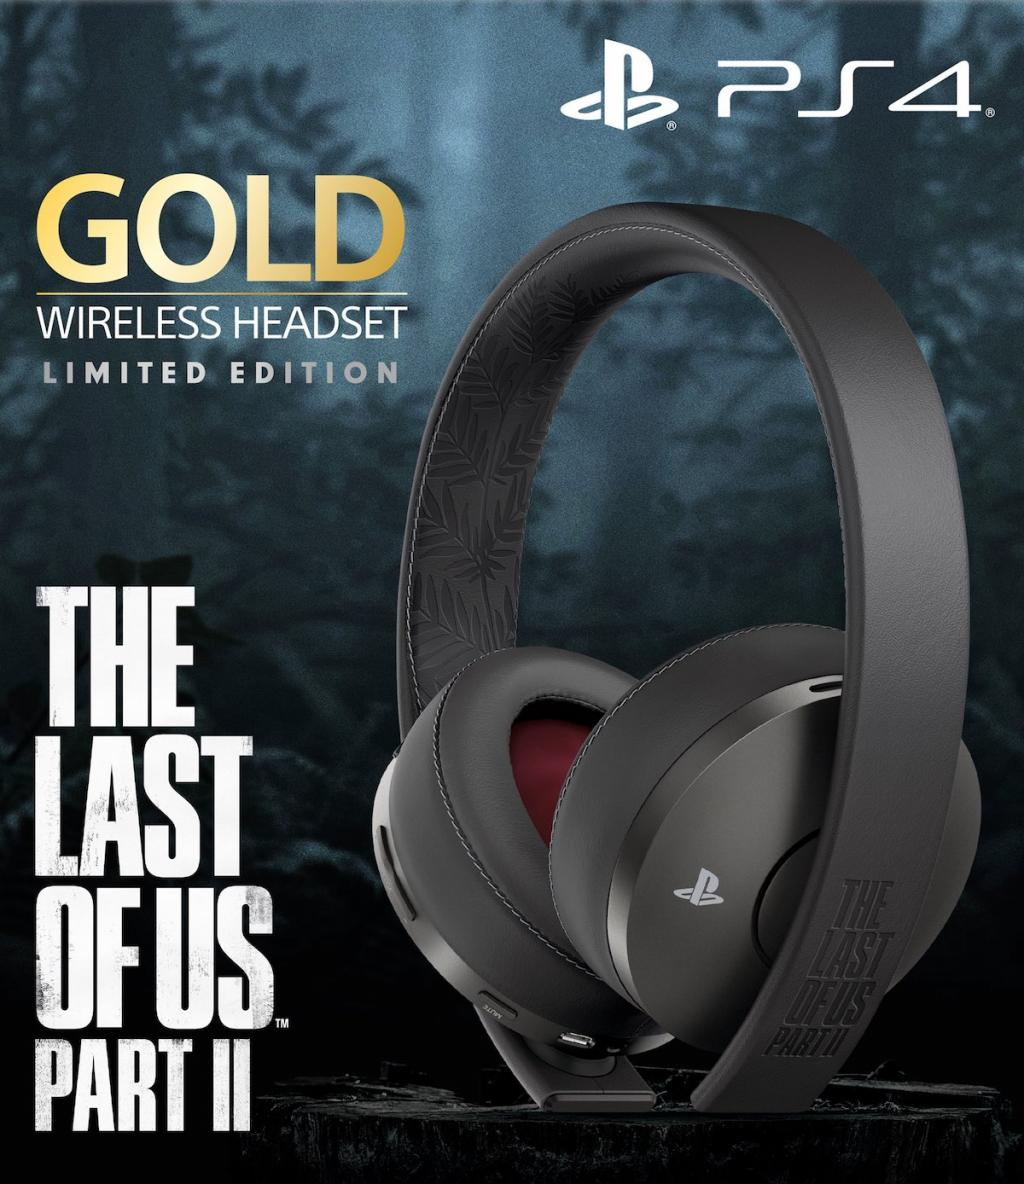 THE LAST OF US PART II GOLD WIRELESS HEADSET-LIMITED EDITION